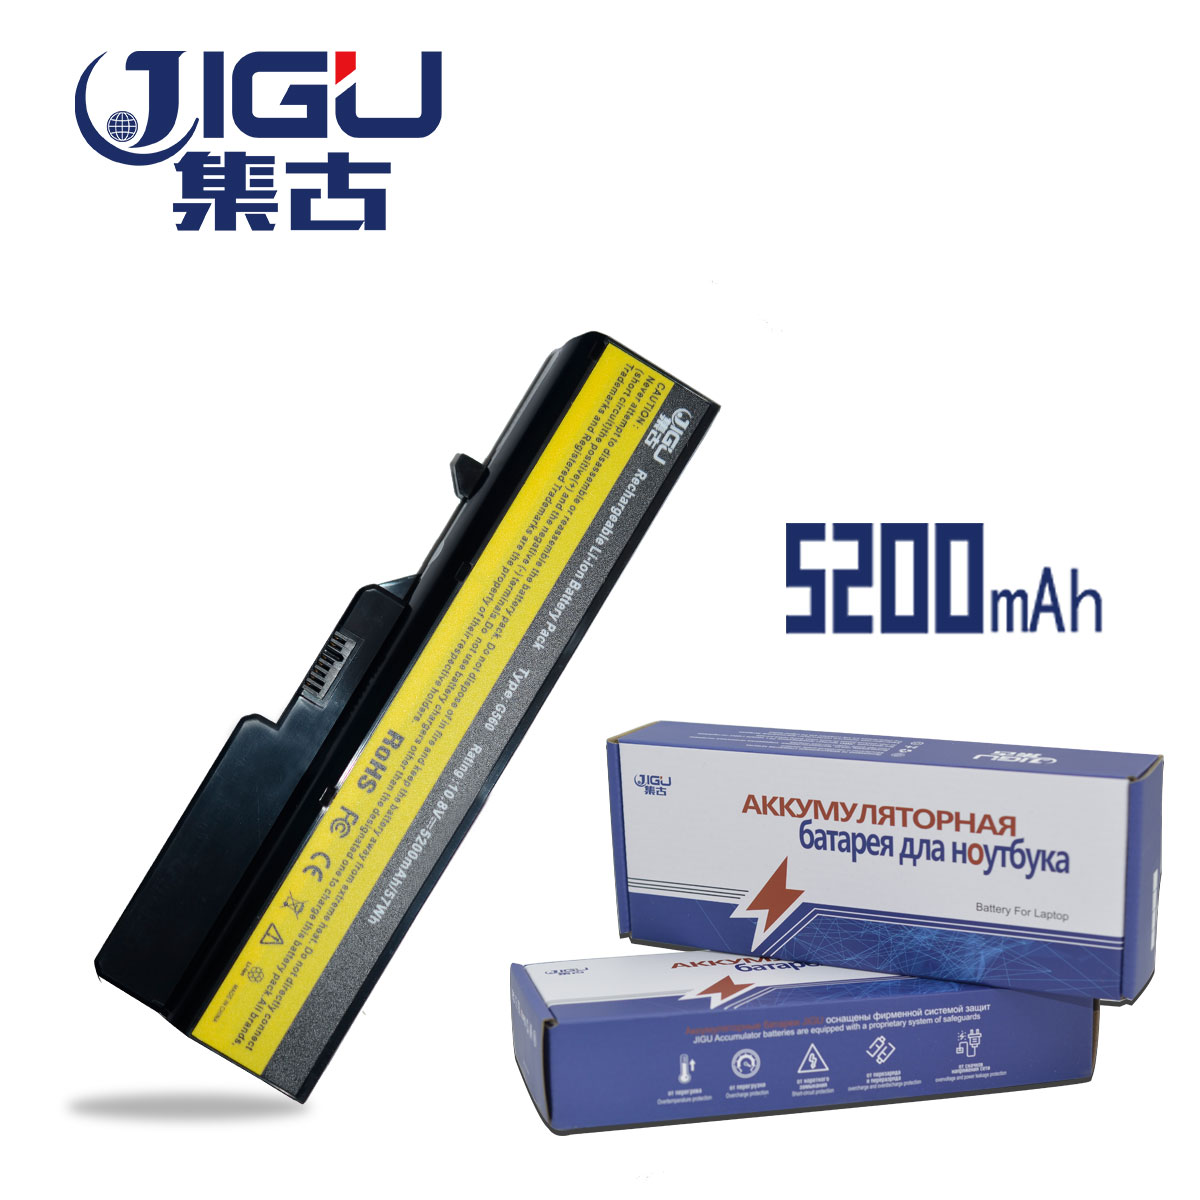 JIGU Laptop Battery For LENOVO IdeaPad G460 G465 G470 G475 G560 G565 G570 G575 G770 Z460 L09M6Y02 L10M6F21 L09S6Y02 z570 gzeele new us laptop keyboard for lenovo g570 z560 z560a z560g z565 g575 g770 g560 g560a g565 g560l us english keyboard